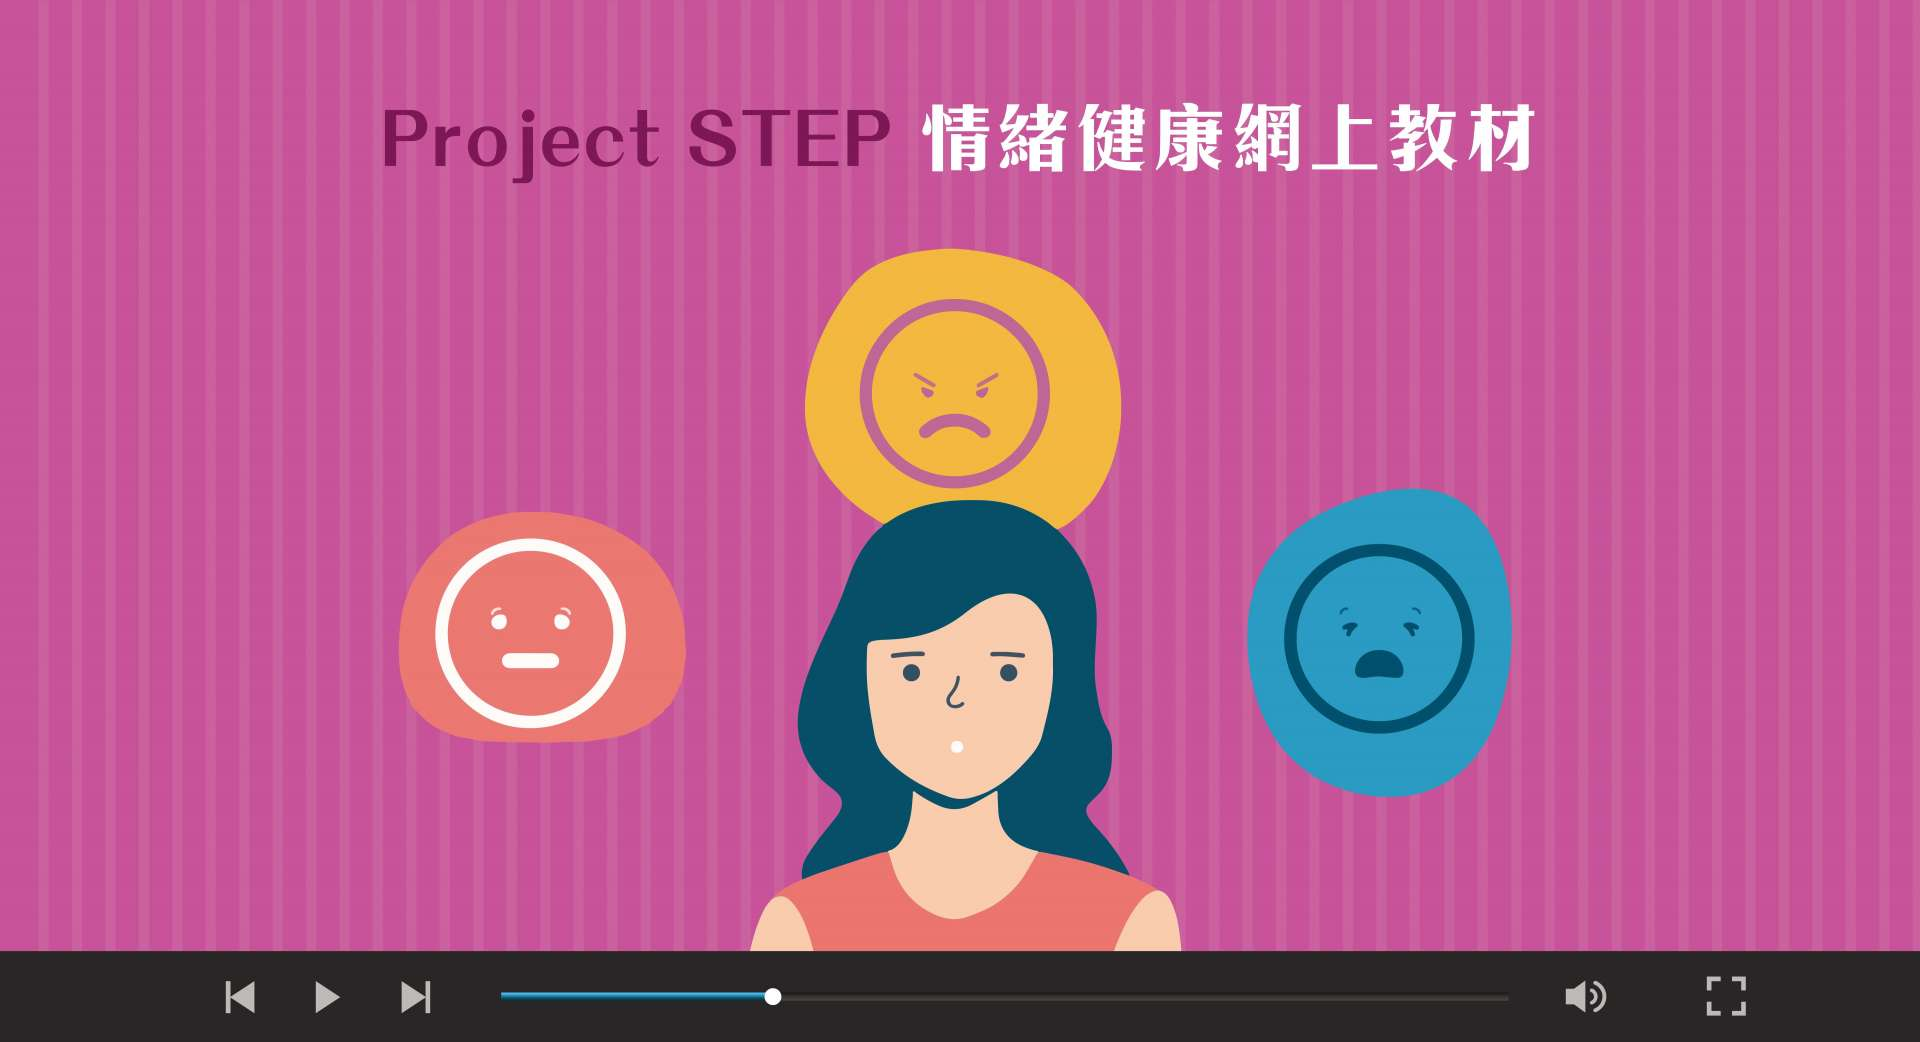 projectstepcover_工作區域 1